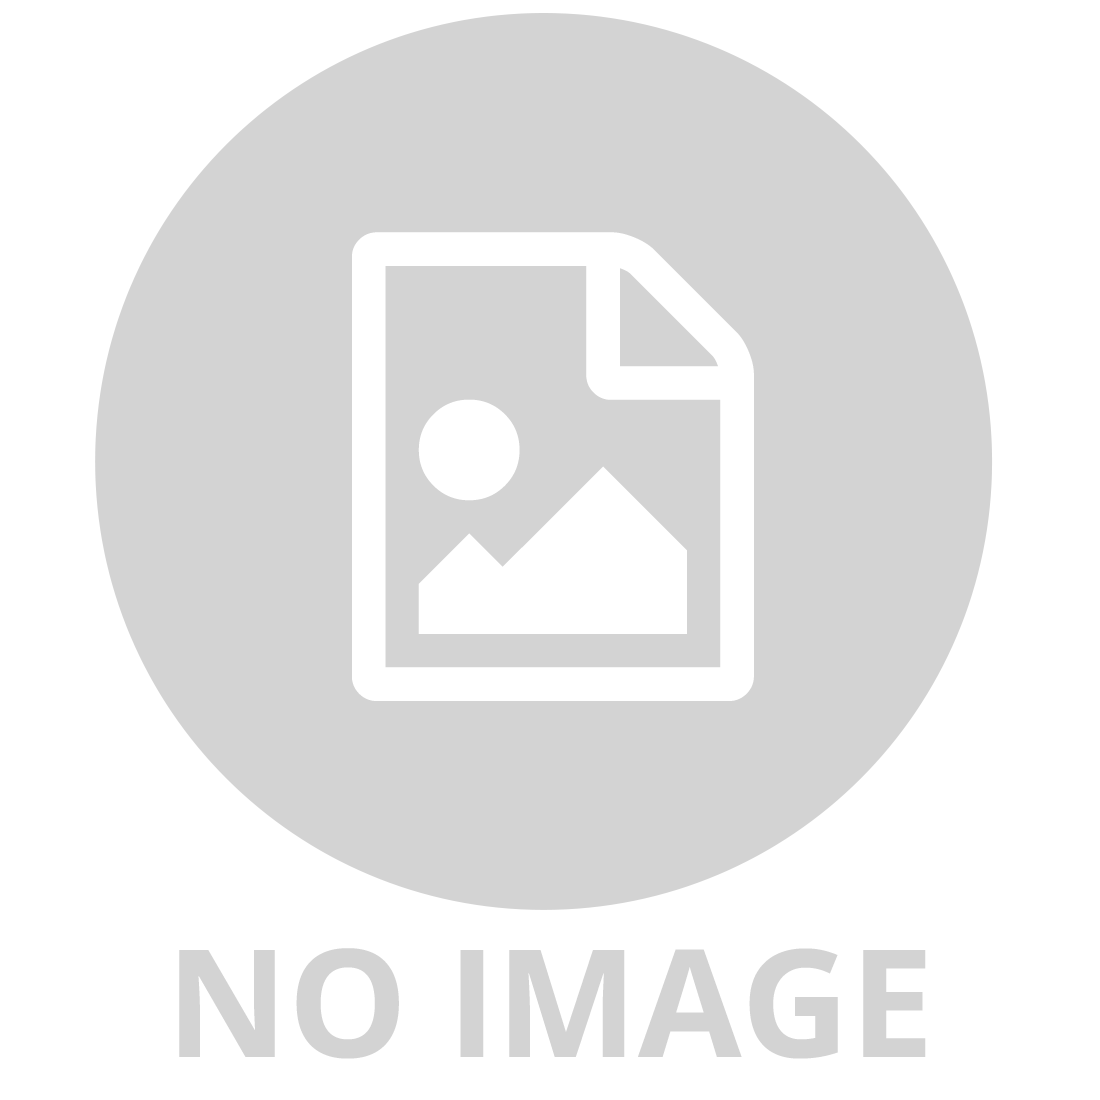 BKIDS LOBSTER RATTLE AND TEETHER